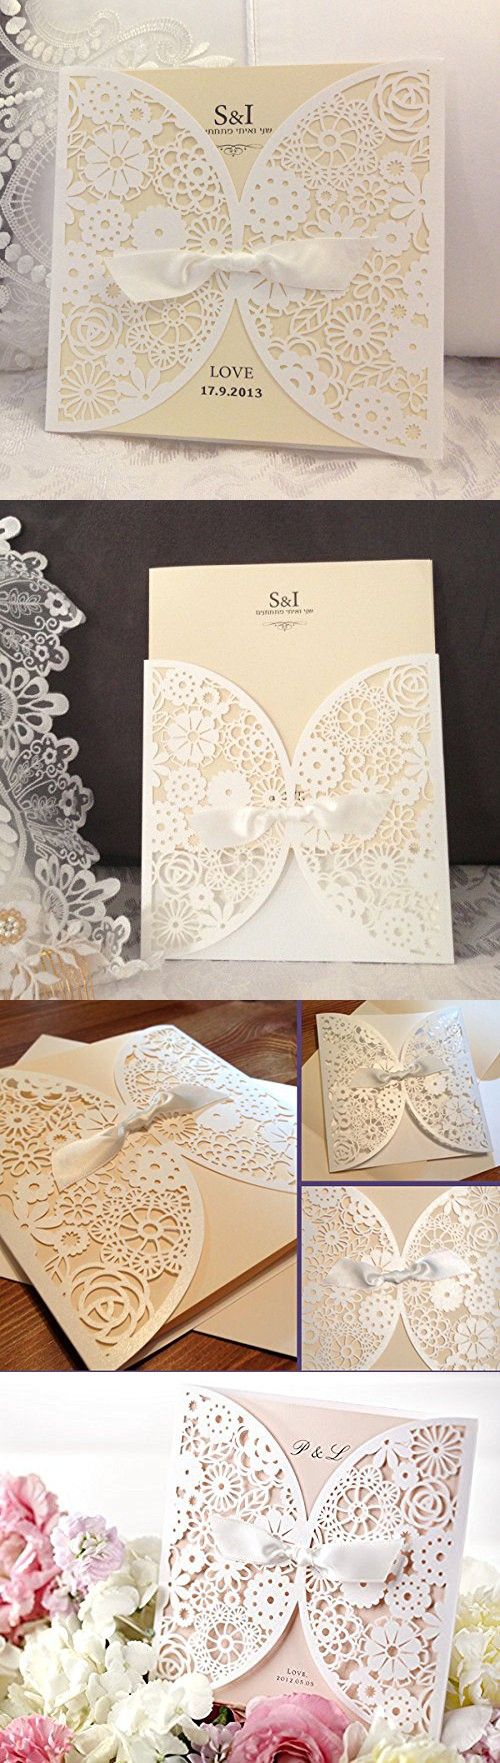 DIY Laser Cut Lace Vintage Flower Wedding Invitation Template Invite ...